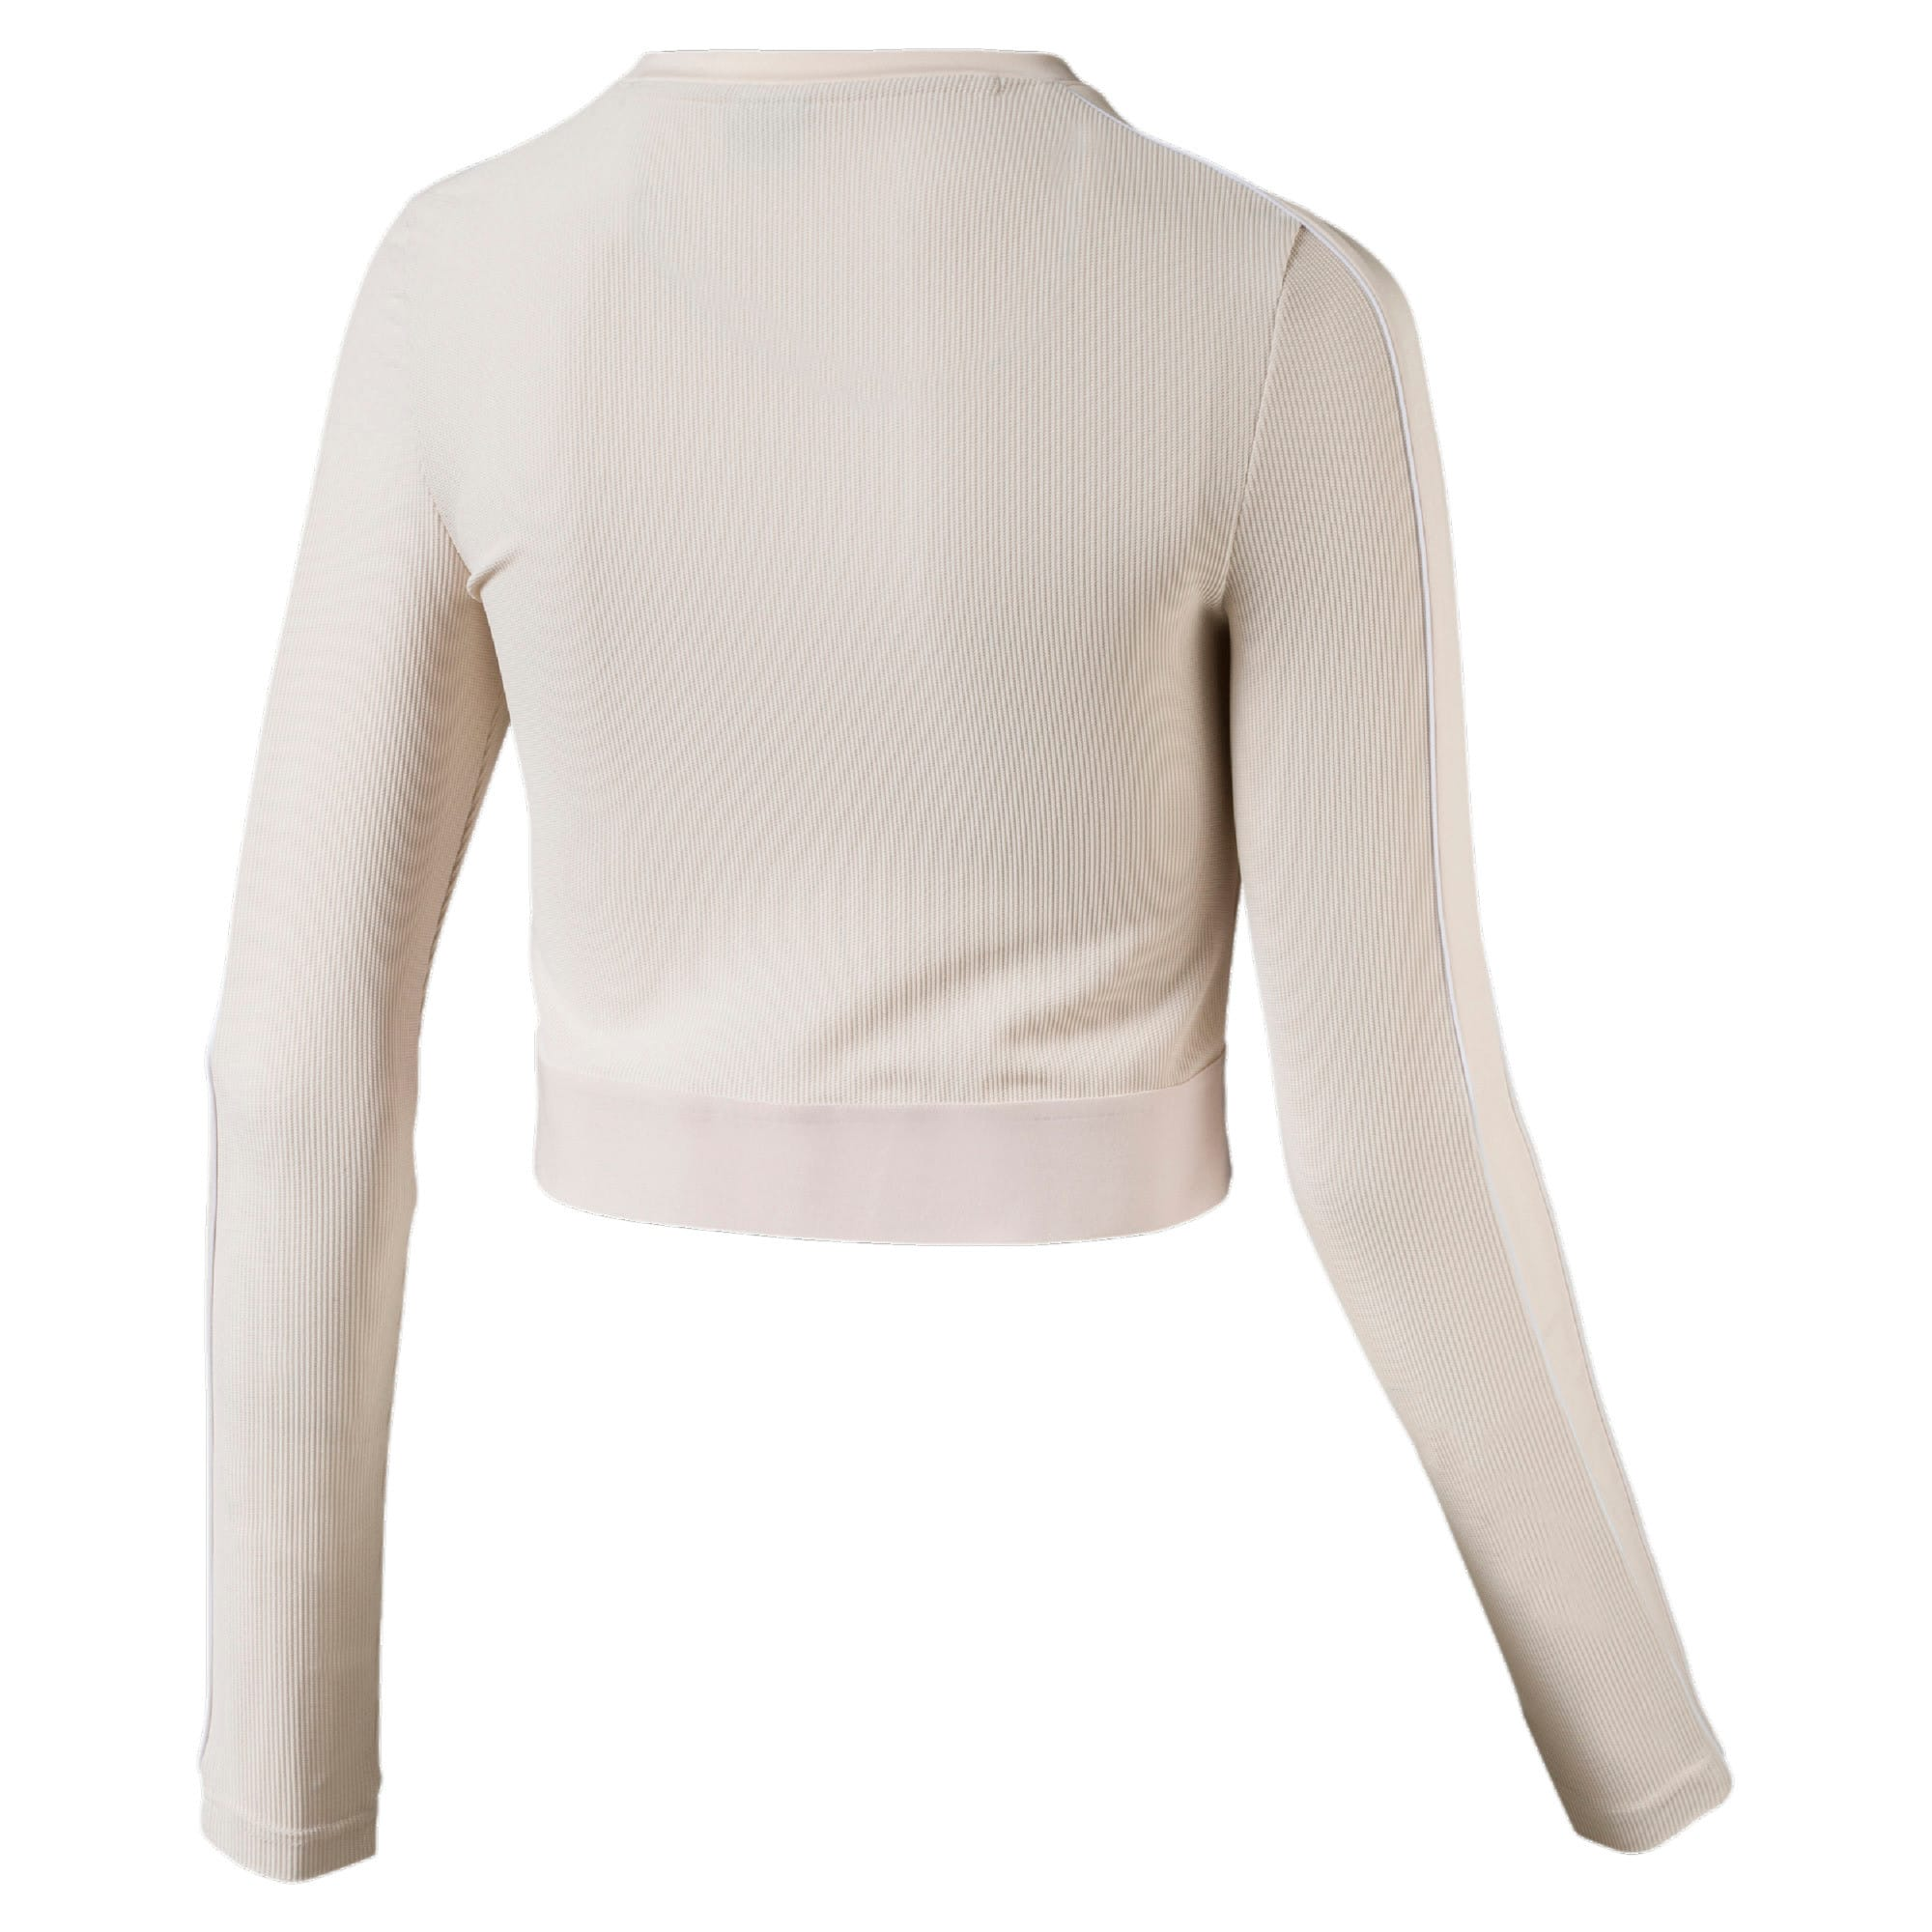 Thumbnail 5 of Classics Rib Cropped Long Sleeve Women's Top, Pastel Parchment, medium